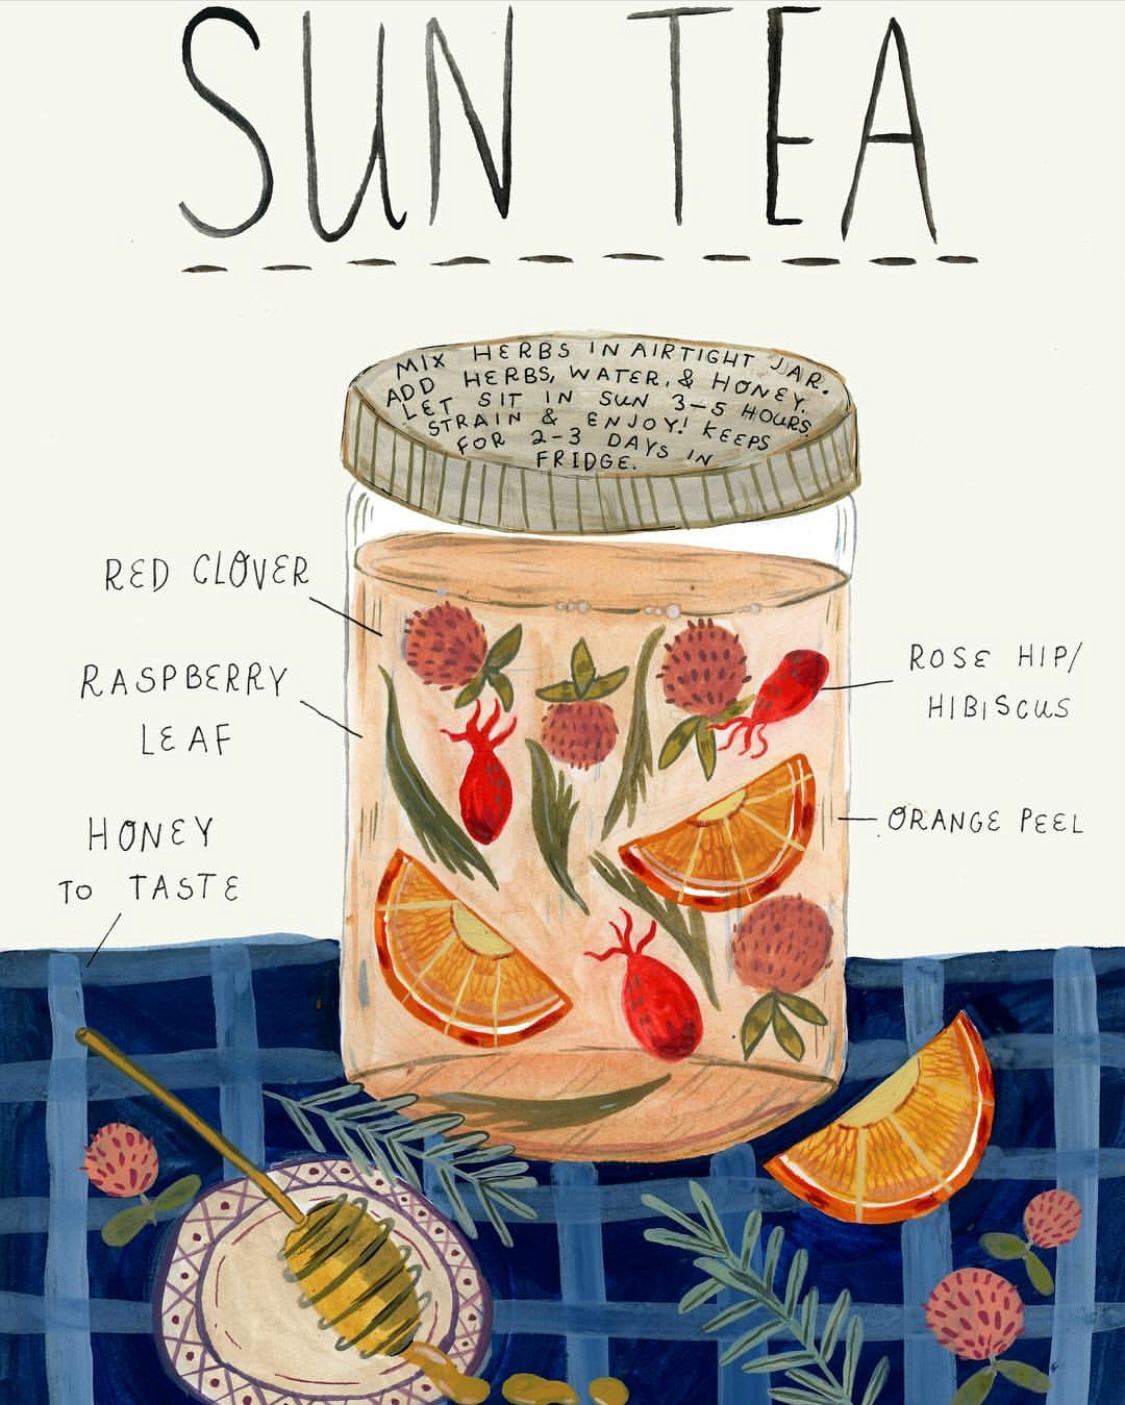 How To Make Fresh Herbal Sun Tea | Herbal Academy | What better way to become acquainted with herbs than by sipping fresh herbal sun teas? Here's how to make herbal sun teas using herbs growing all around you.